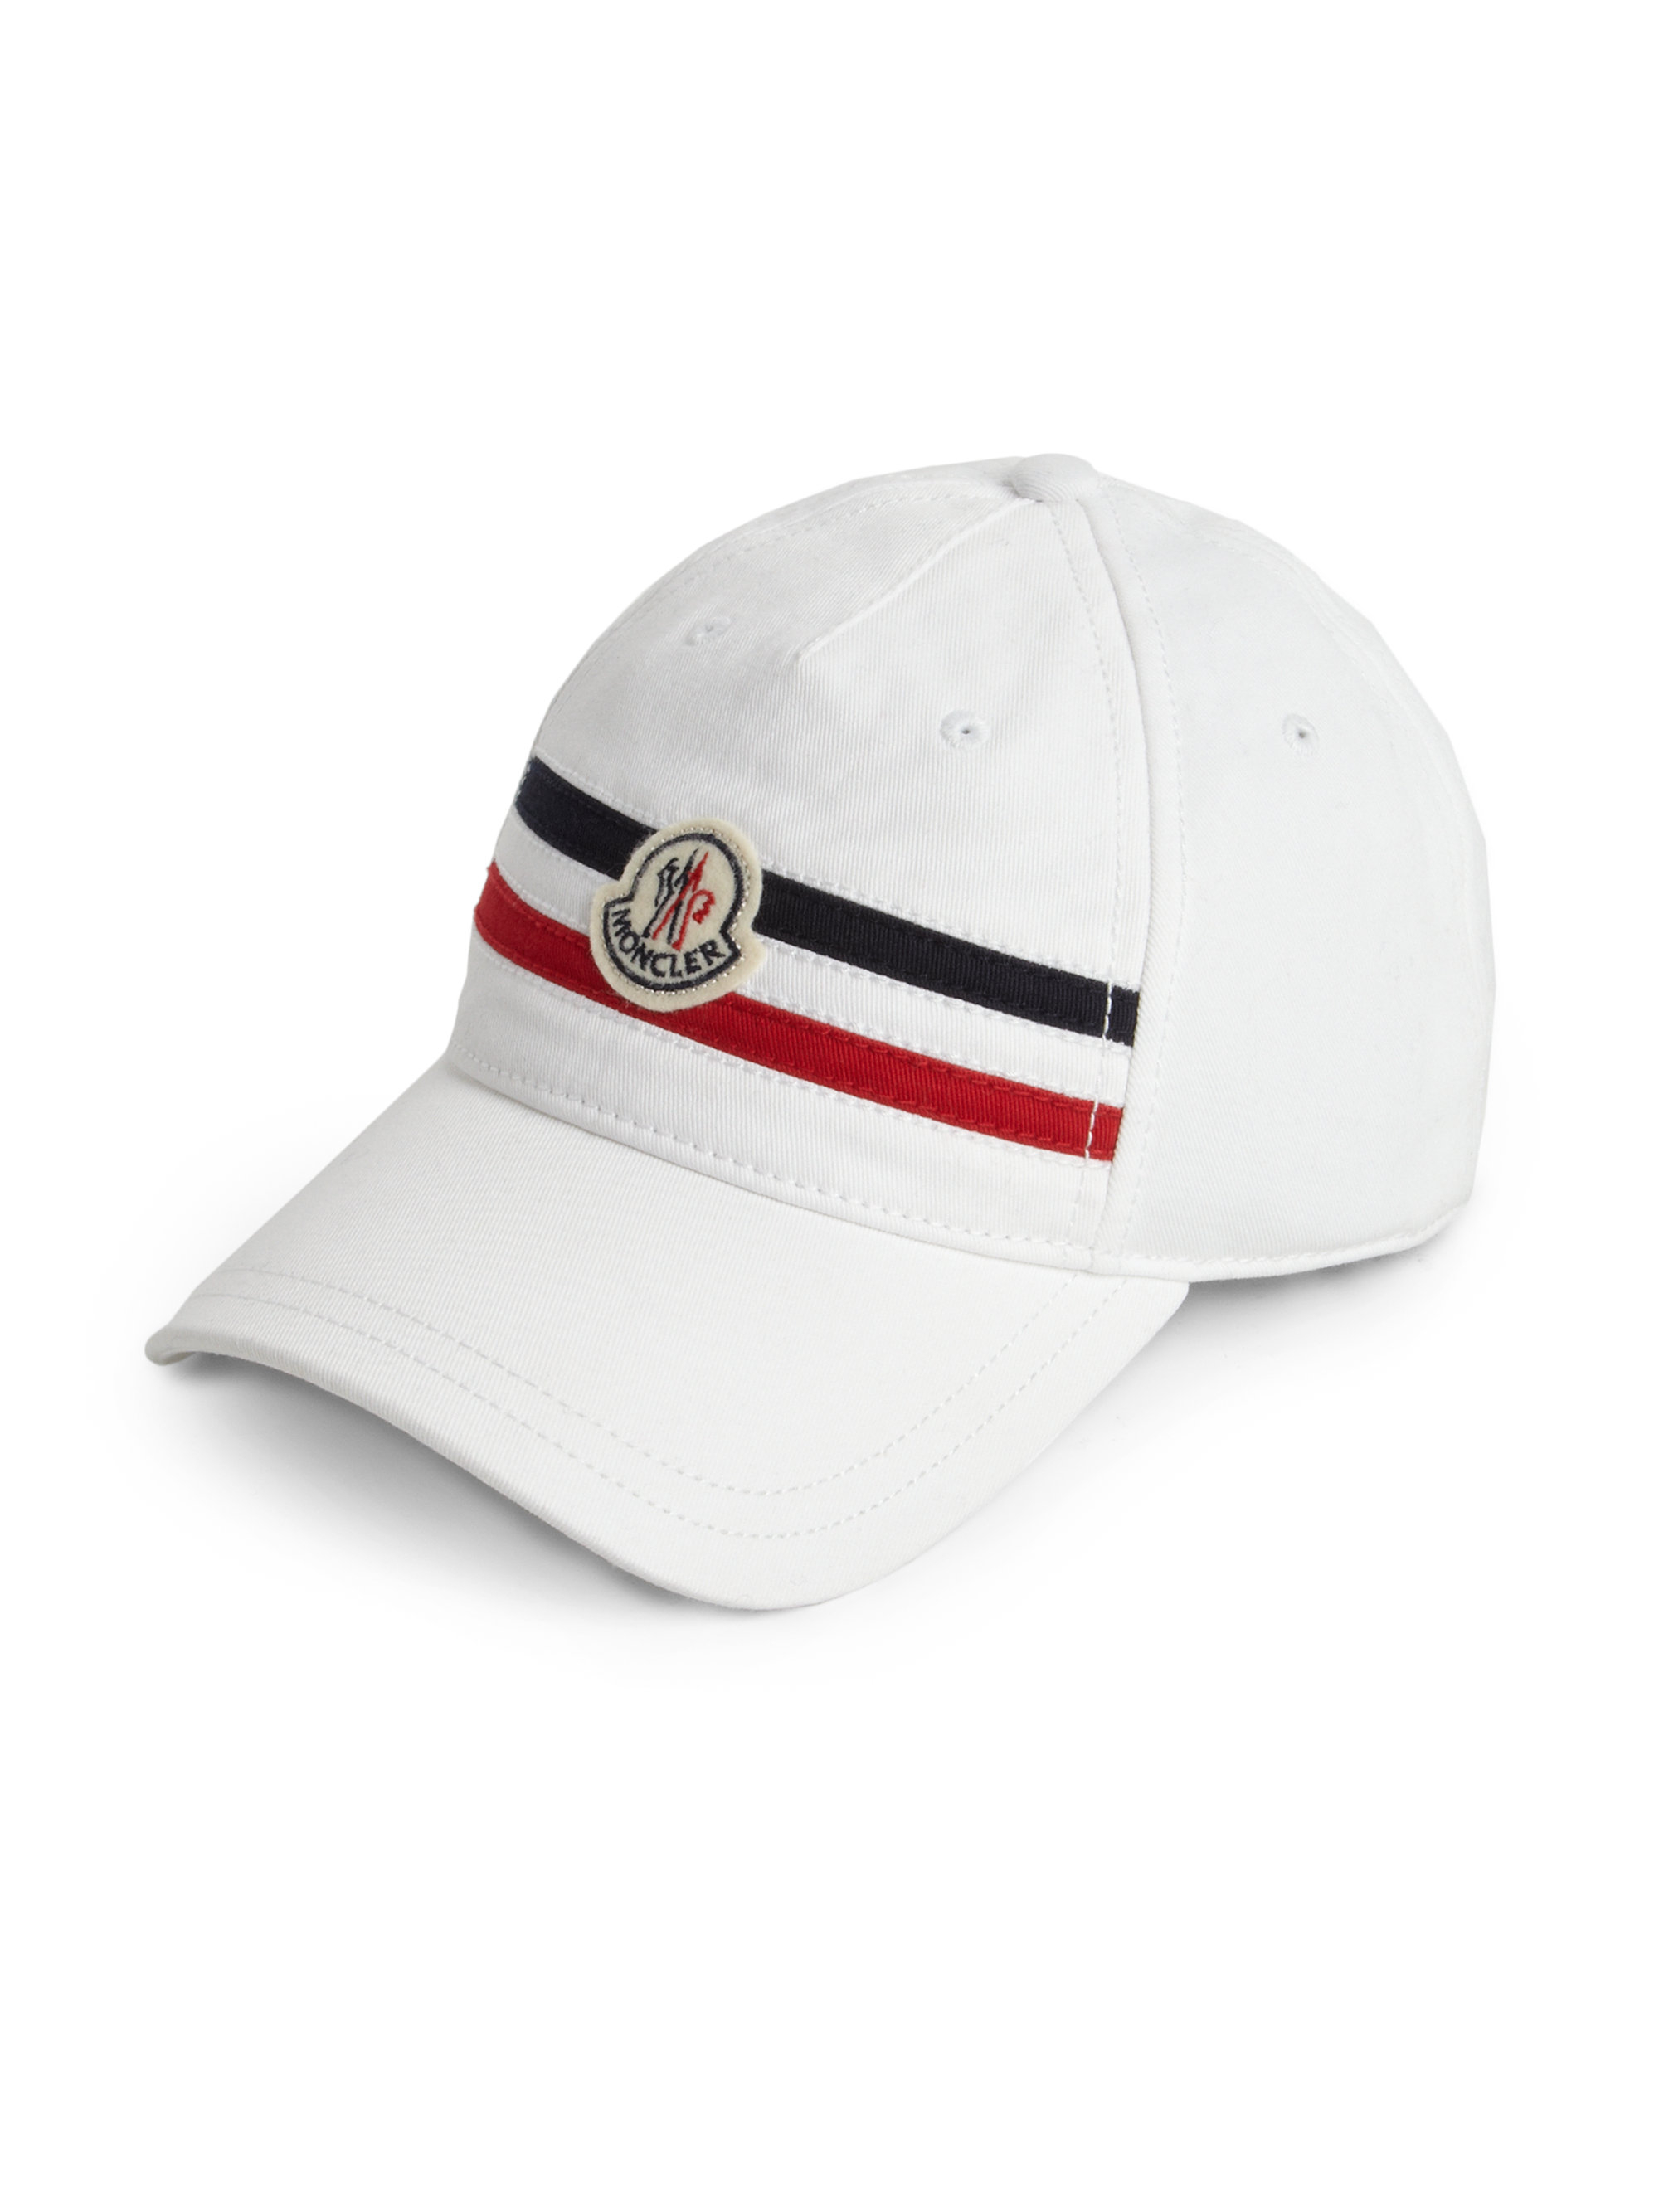 a2c492ed342 Lyst - Moncler Logo Striped Baseball Cap in White for Men